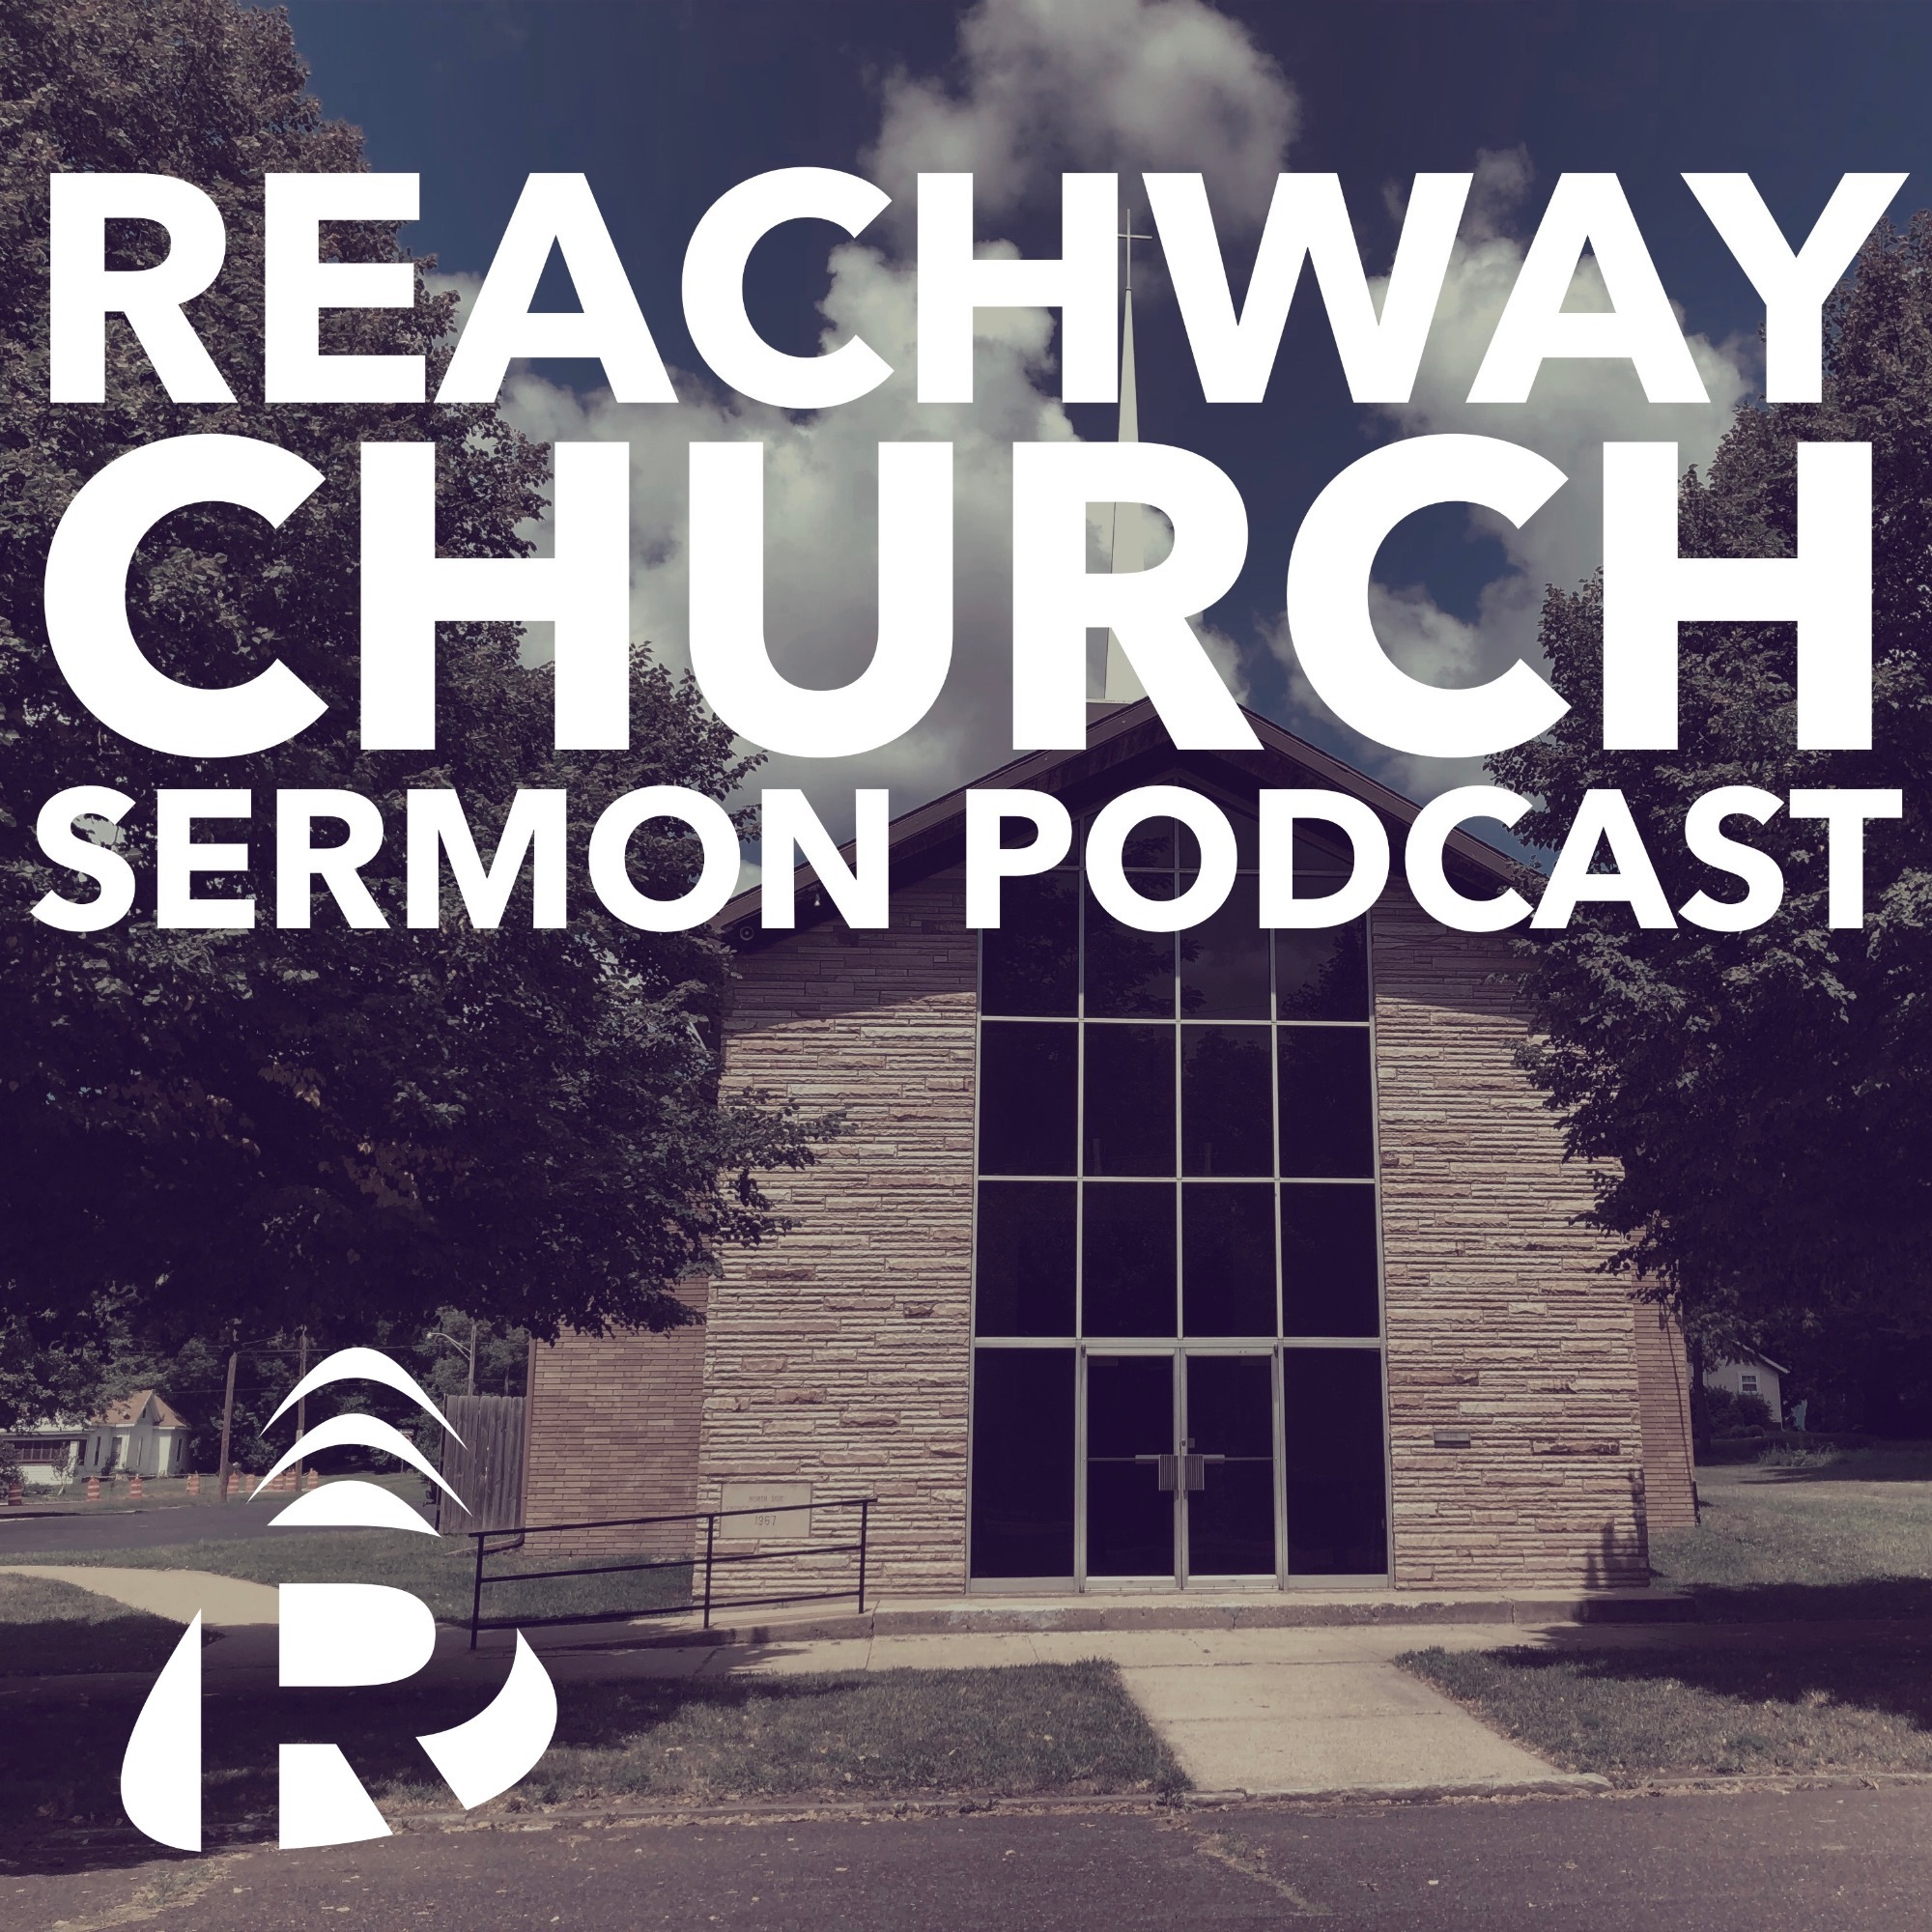 reachway sermon podcast logo.jpeg